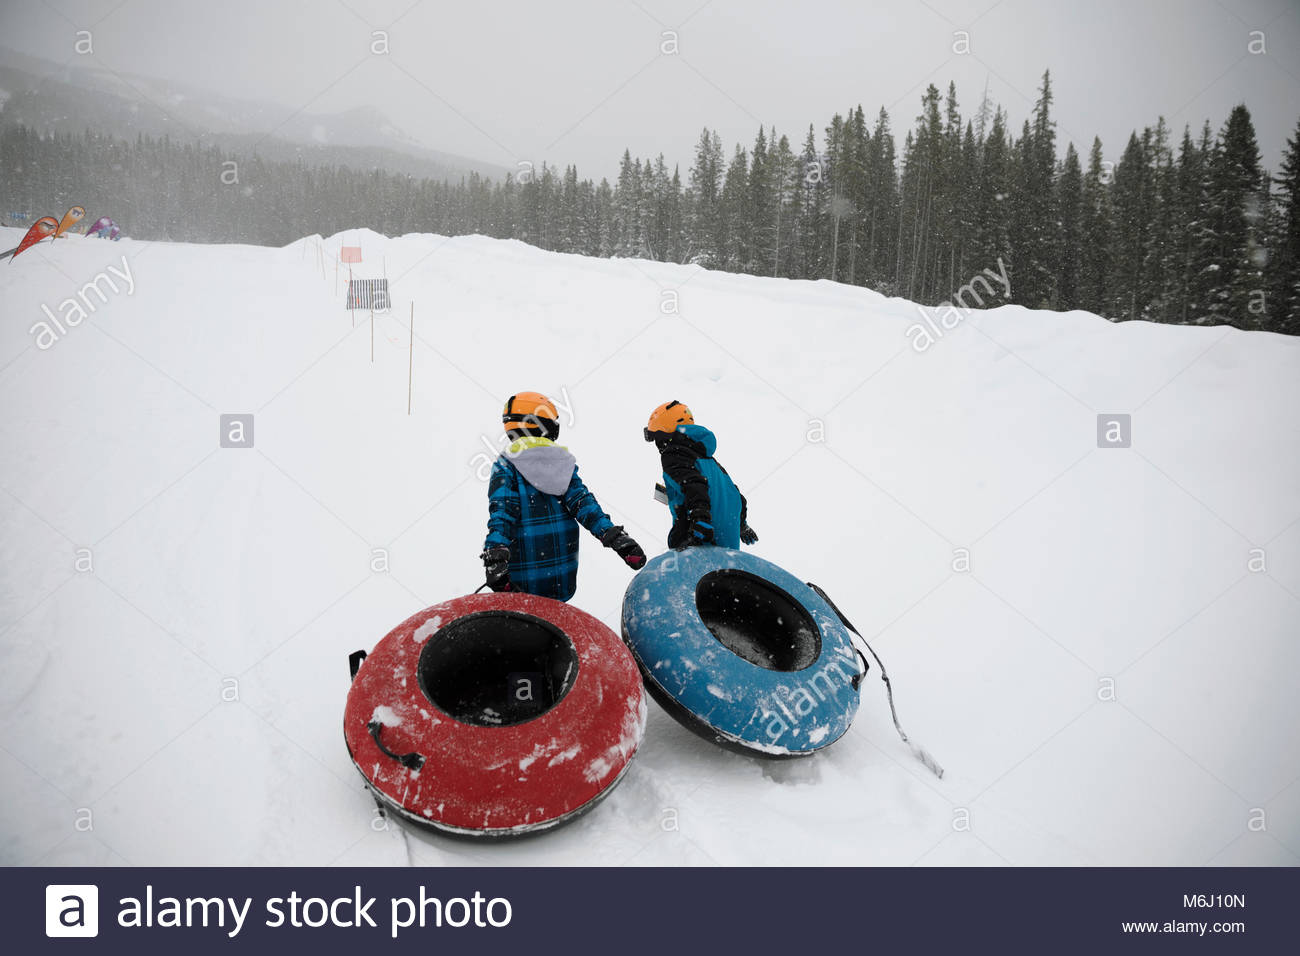 Brothers pulling inner tubes in snow at tube park - Stock Image